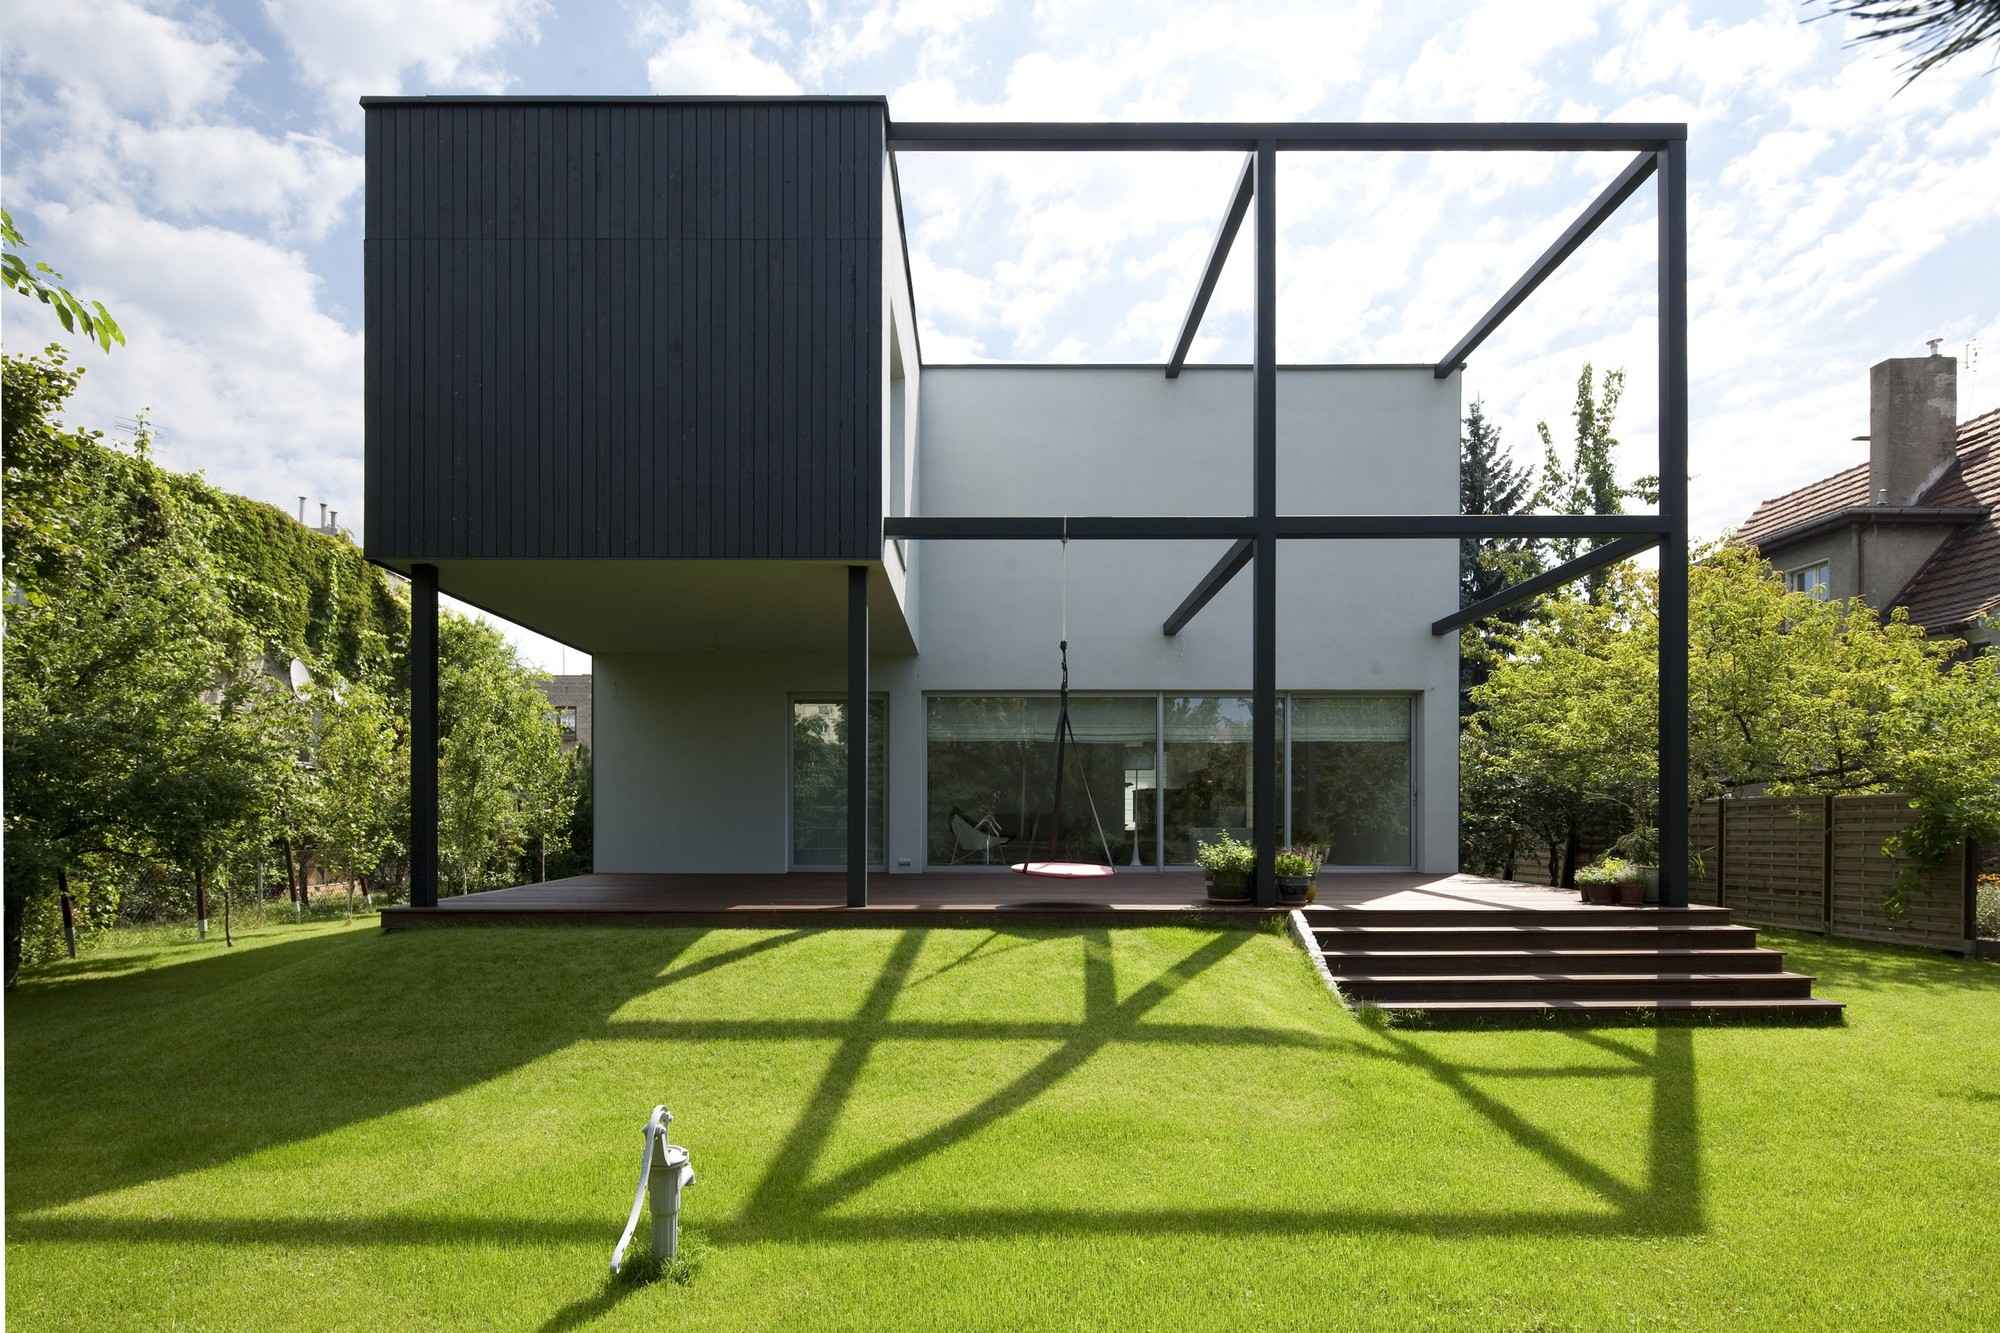 Black Cube House Kameleonlab on ultra modern house designs